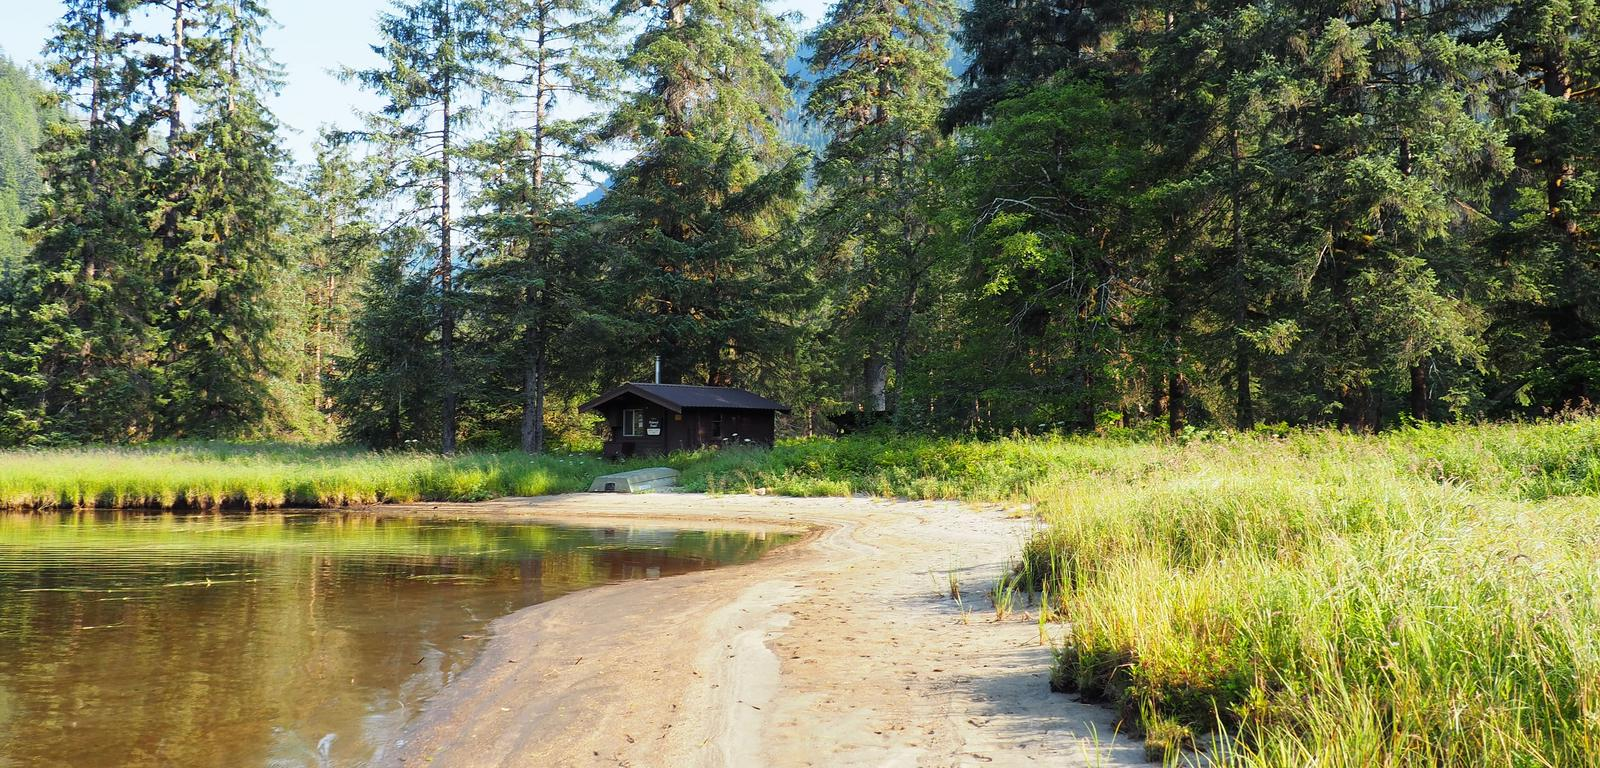 MARTEN LAKE CABIN WITH SURROUNDING SCENERY